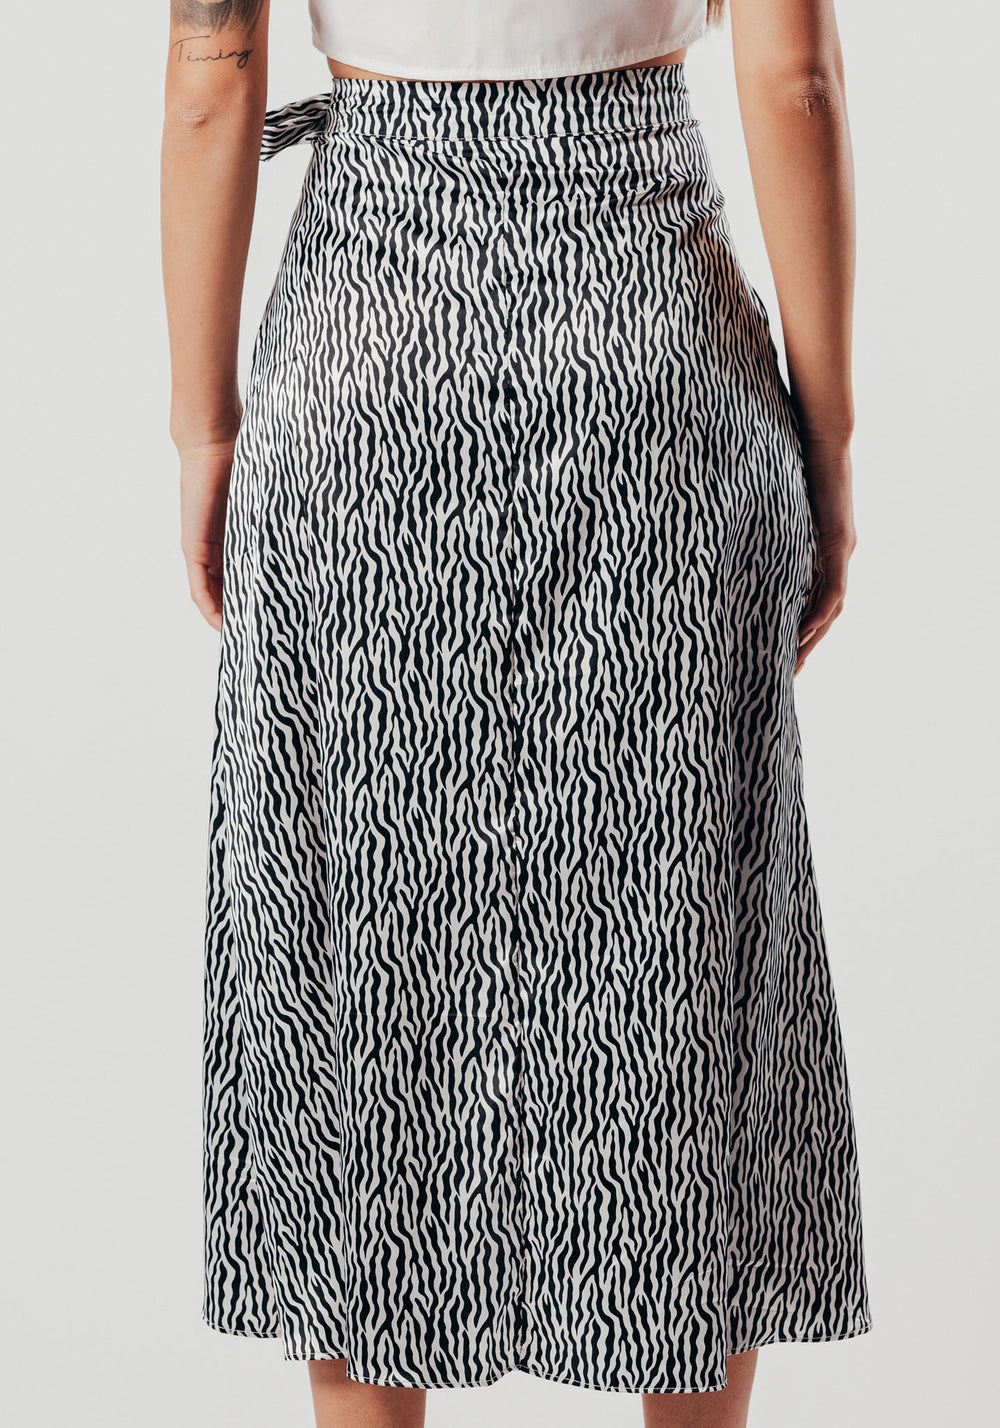 Black And White Tiger Print Wrap Skirt